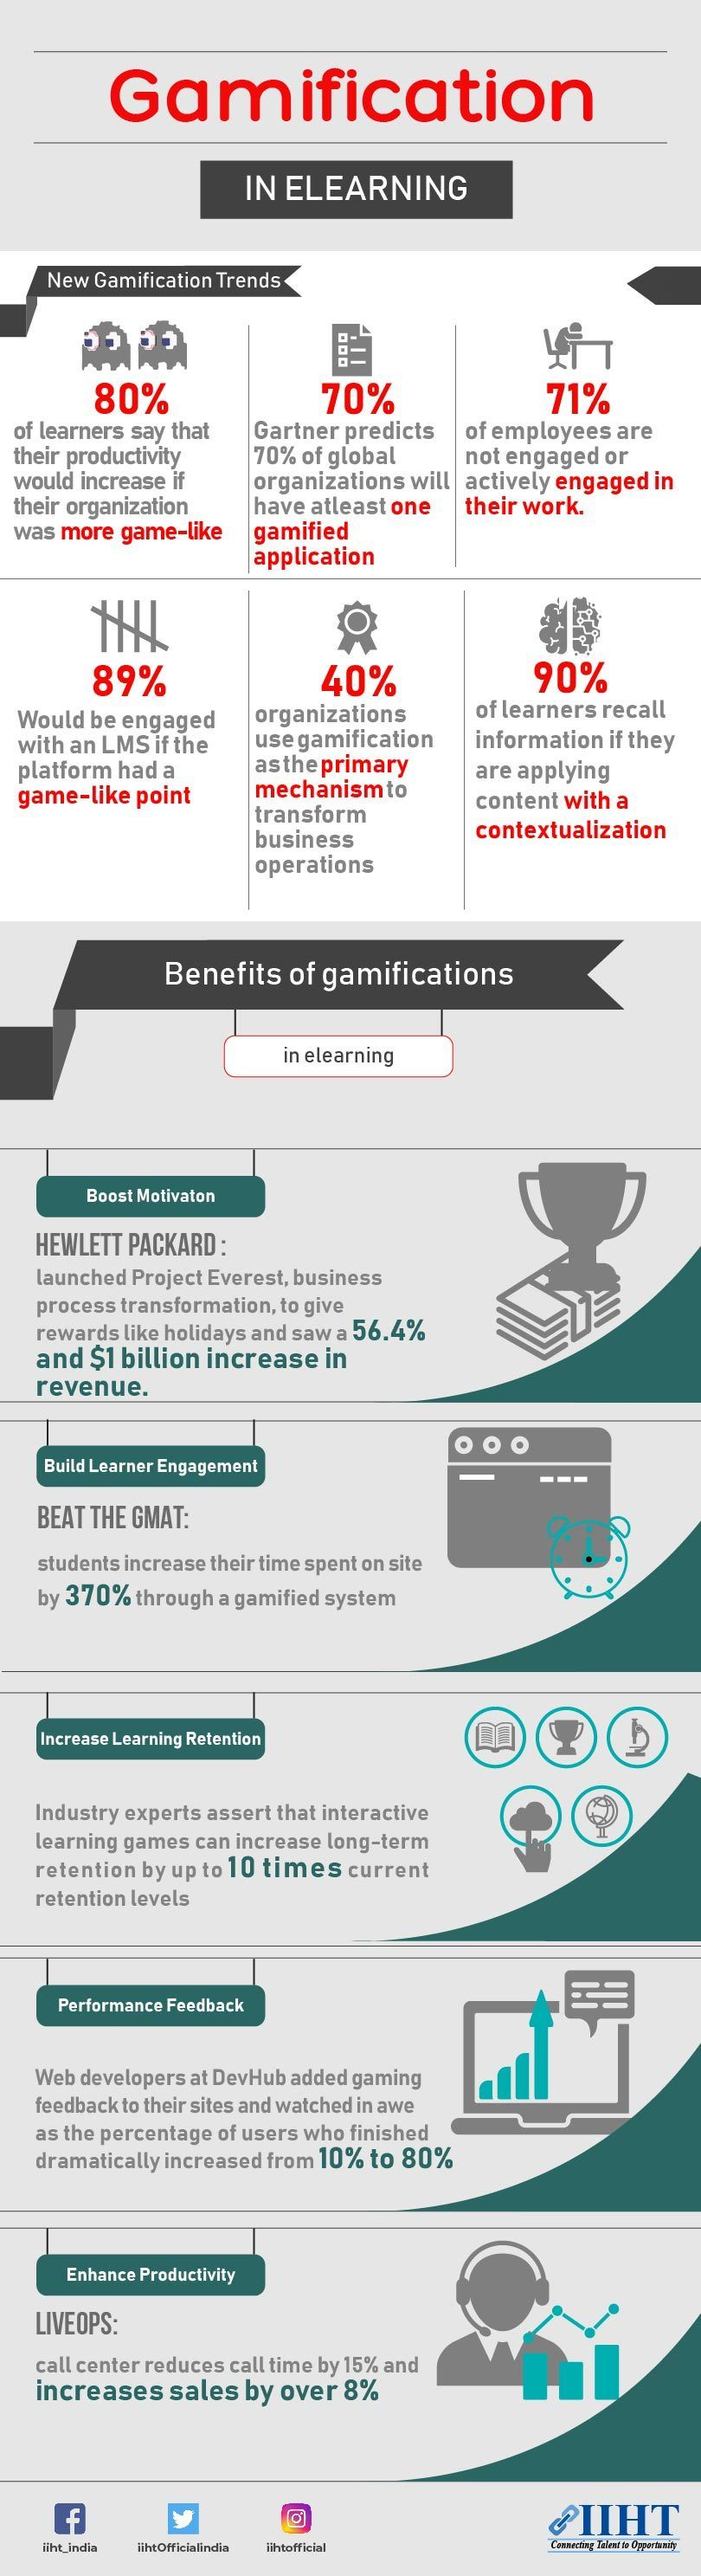 5 Ways To Leverage Gamification In Learning And Development